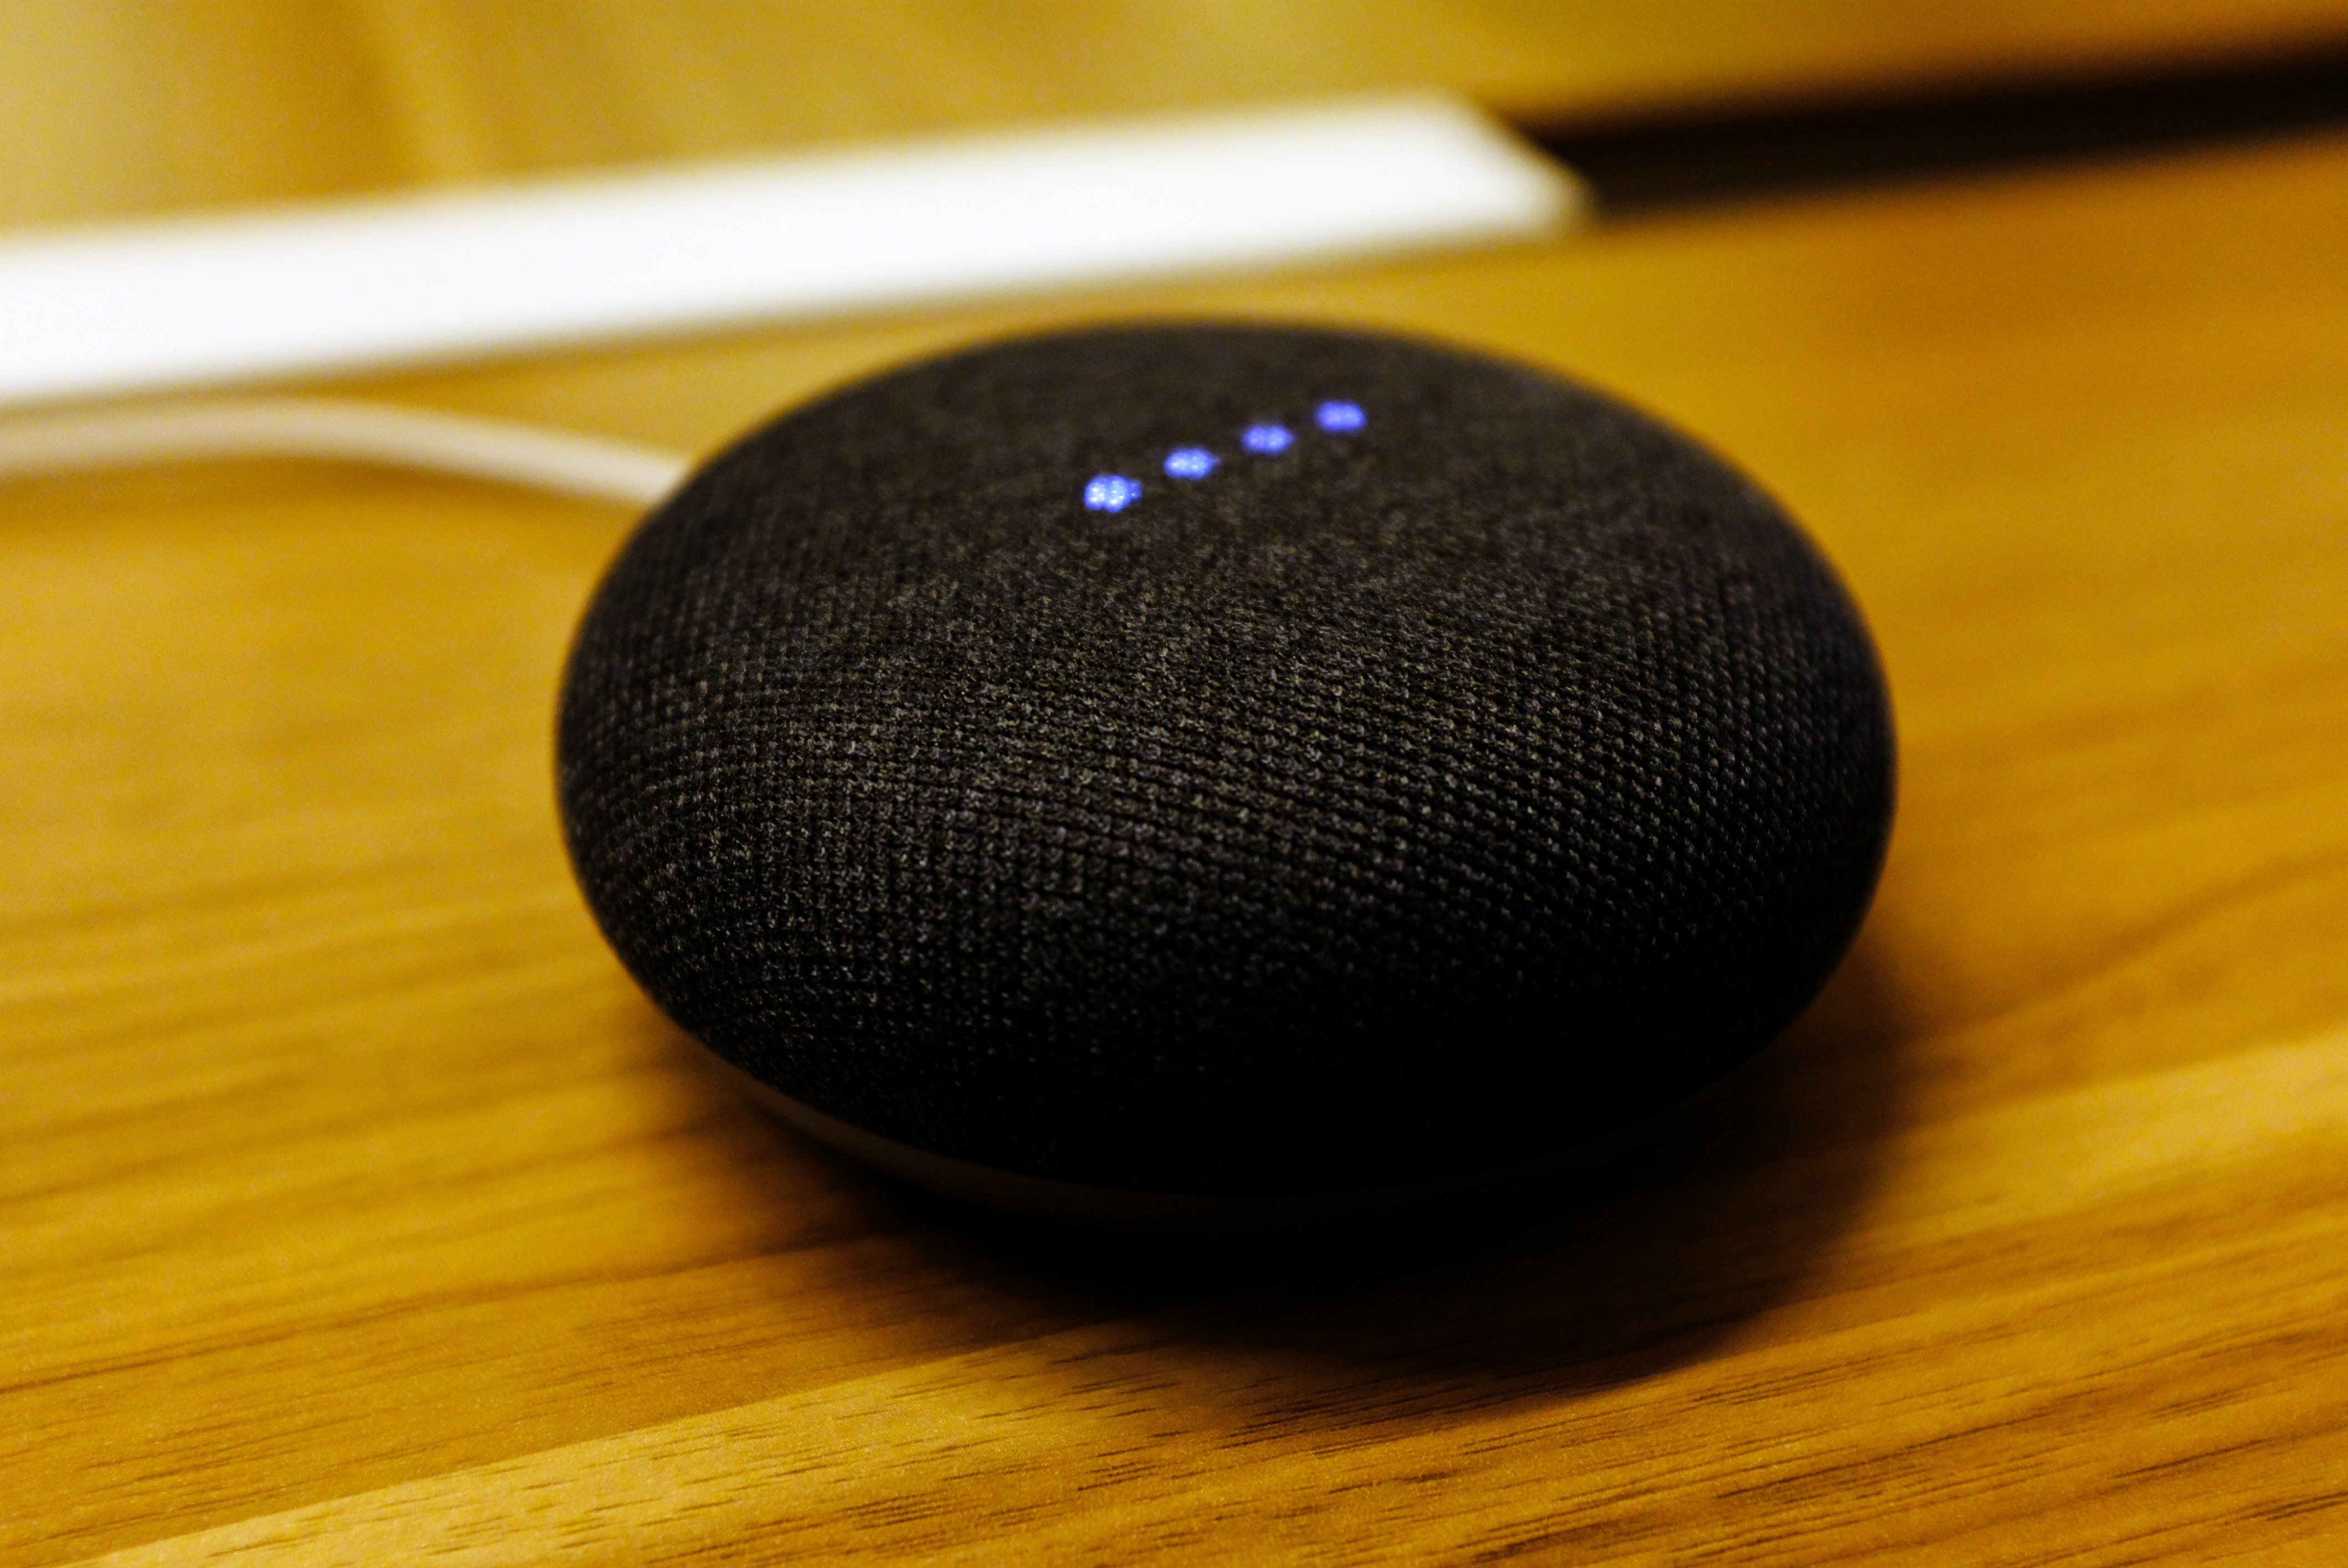 Google is working on a fix for a bug that's causing Home Minis to crash at high volume